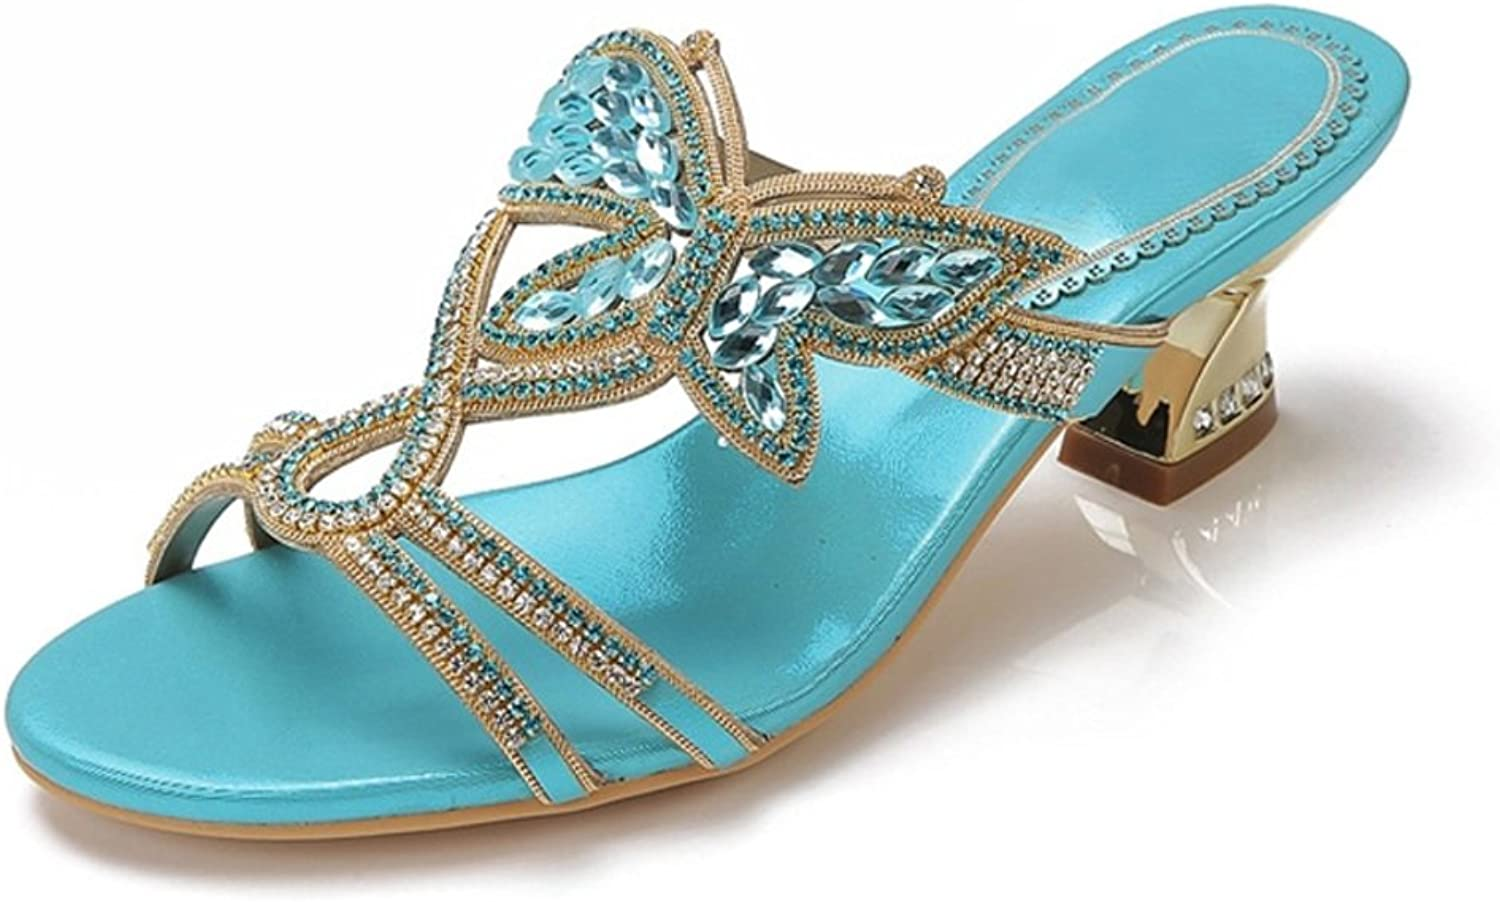 SPLNWTFHCNWPCB Rhinestone Sandals Chunky Heels Women shoes with Sandals Bow Slippers